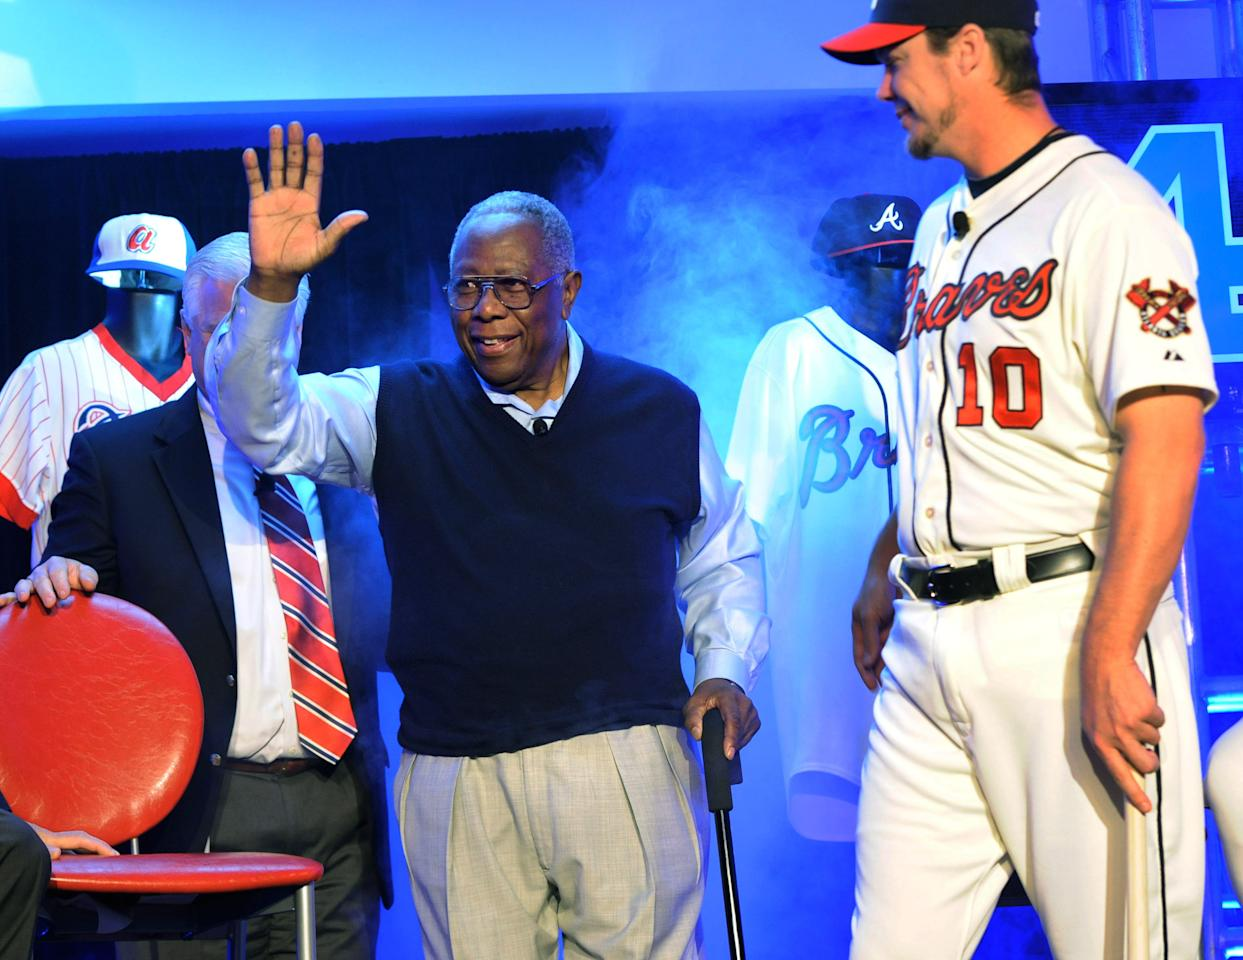 Atlanta Braves' Hank Aaron acknowledges the media while Braves' Chipper Jones looks on when introduced during a news conference to unveil the club's new alternative home uniform, Monday, Feb. 6, 2012, in Atlanta. The uniform pays homage to the team's past, reflecting more of the look of the 1966 team when Aaron played. AP Photo/John Amis)